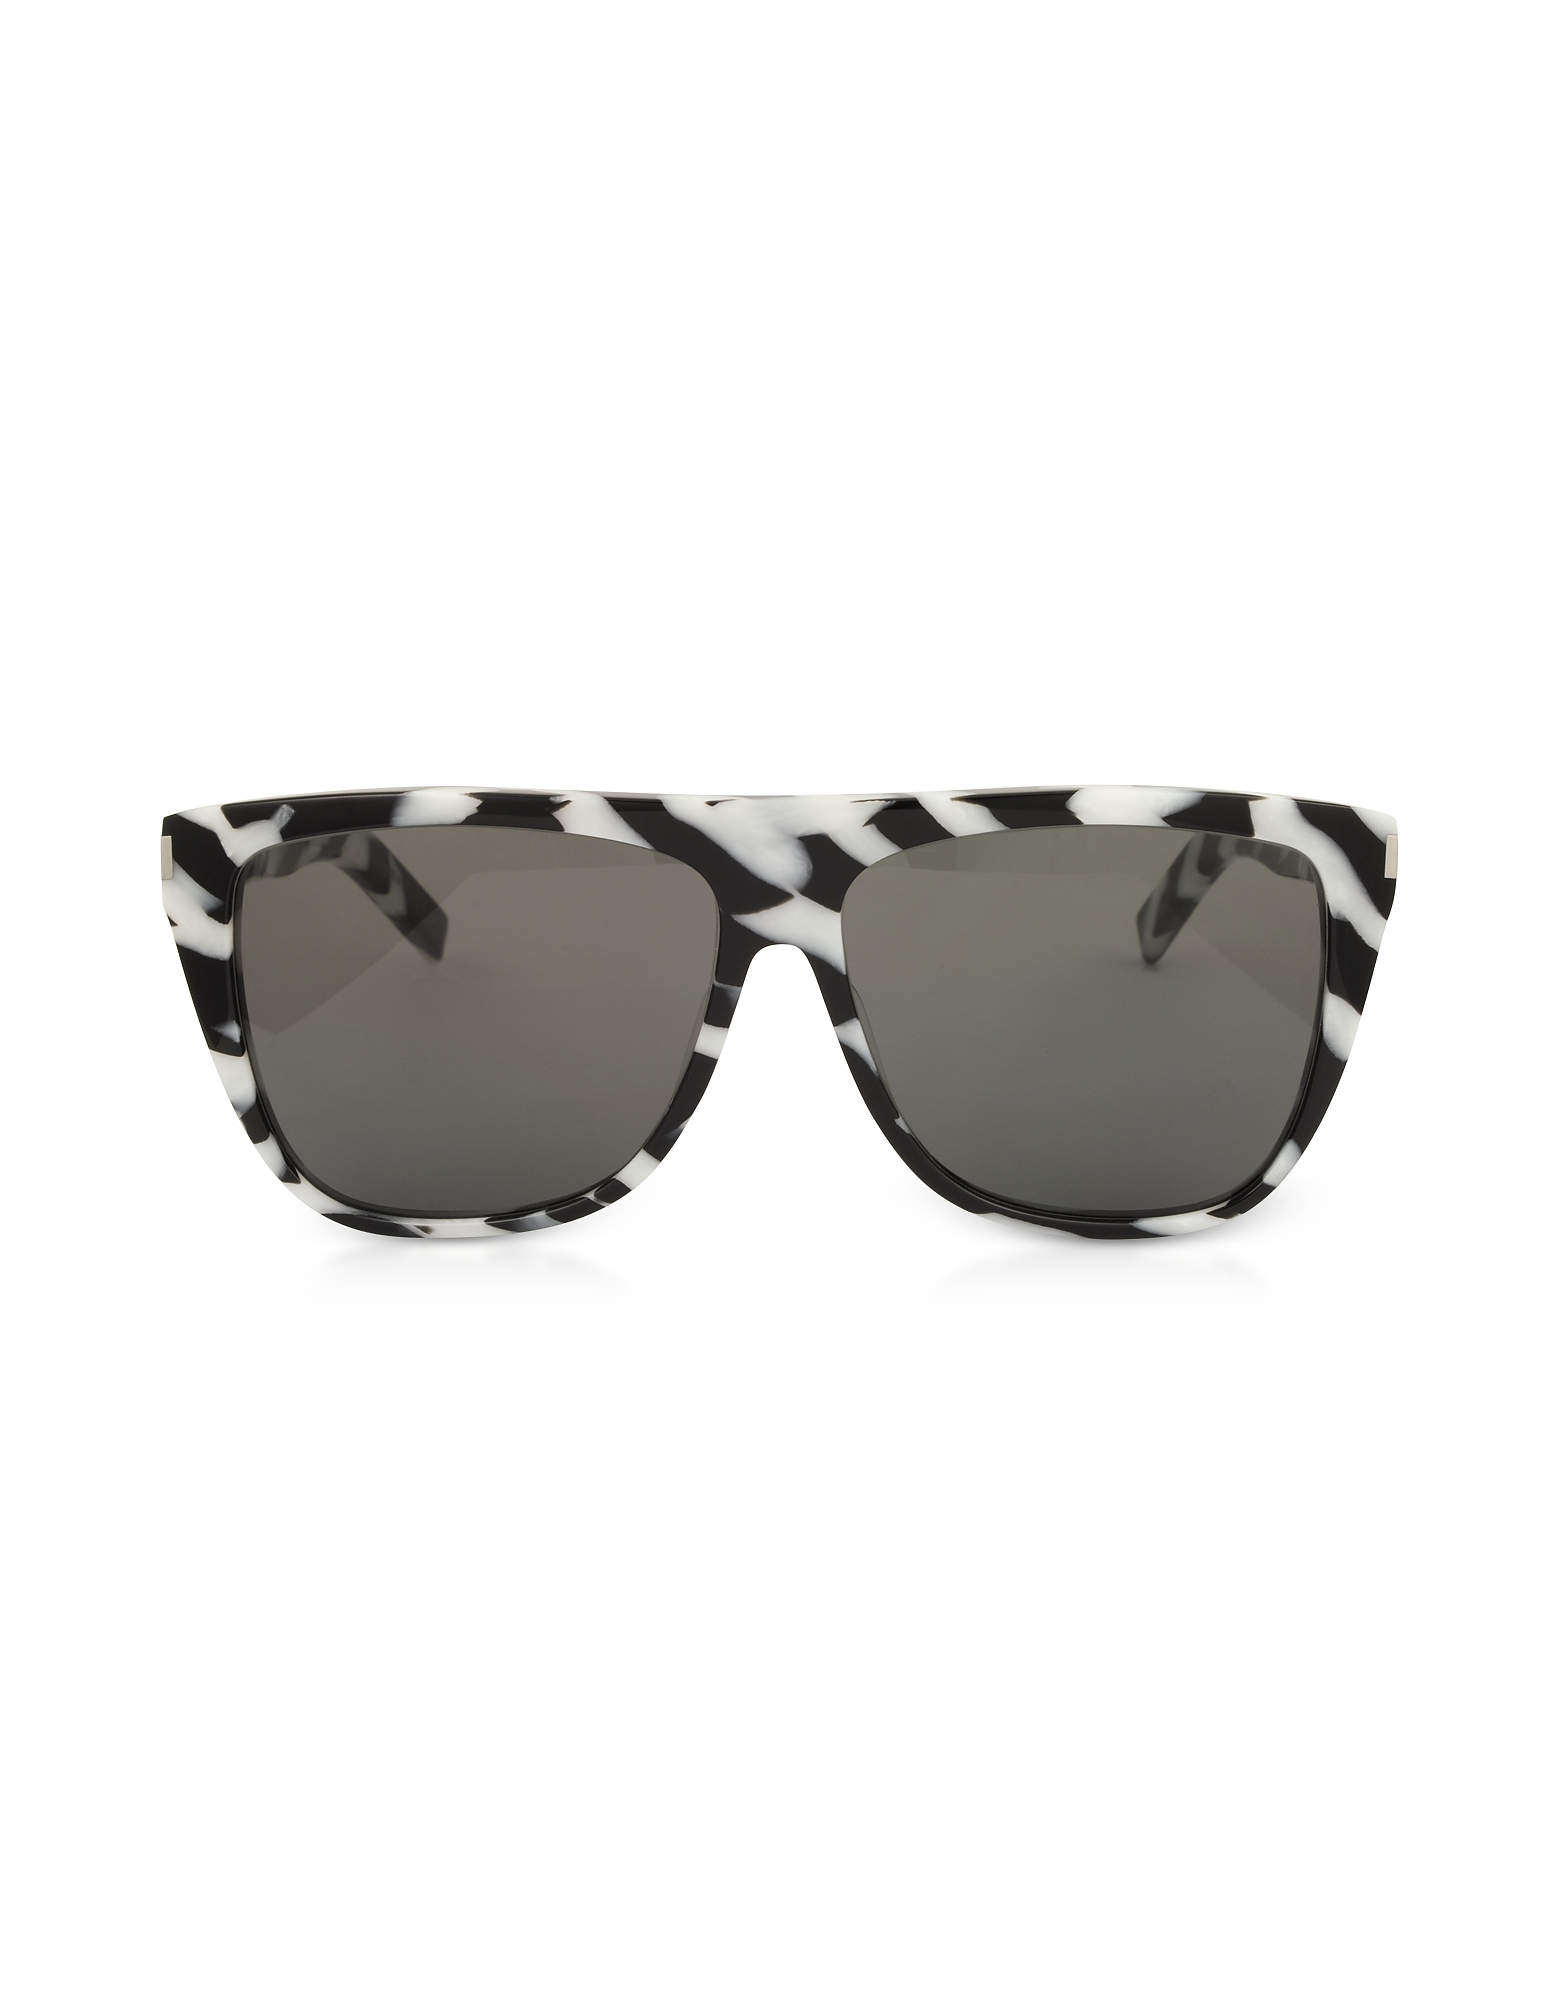 Saint Laurent Designer Sunglasses, SL1 014 Black and White Zebra Striped Acetate Frame Sunglasses